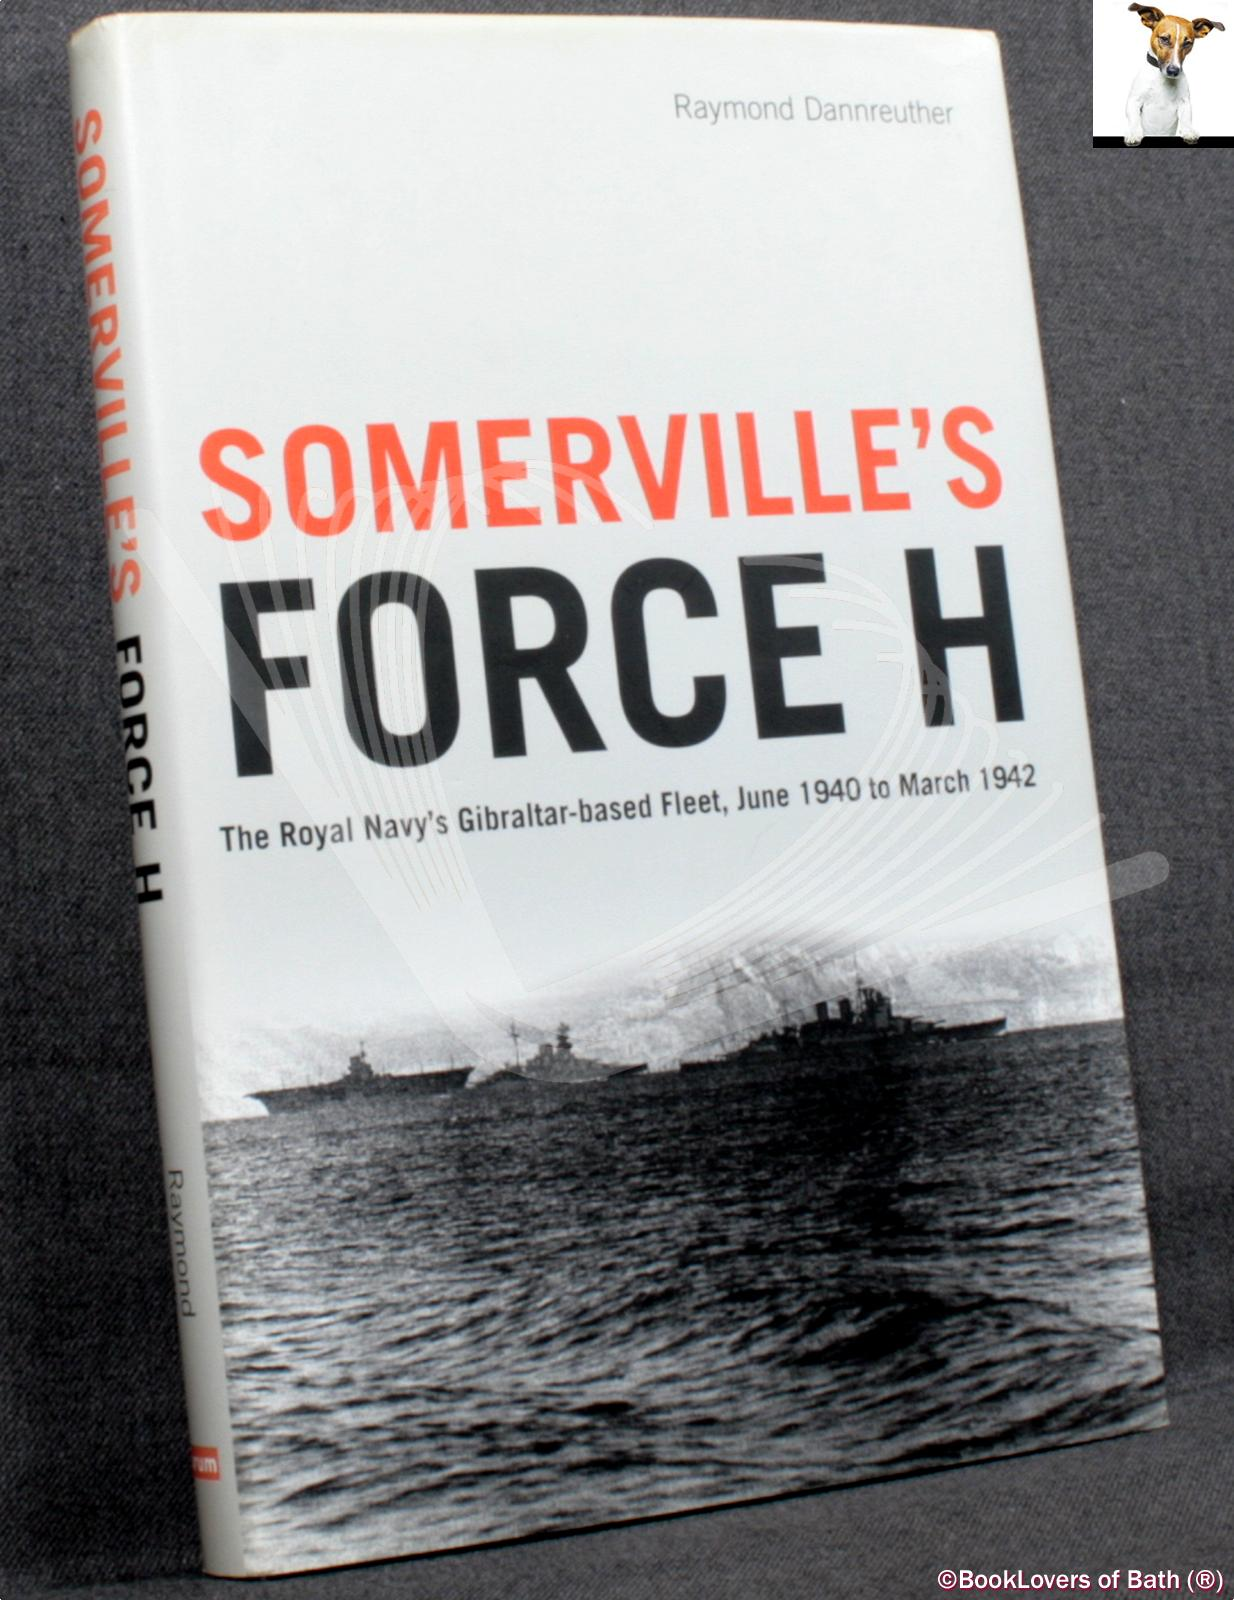 Somerville's Force H: The Royal Navy's Gibraltar-Based Fleet June 1940 to March 1942 - Raymond Dannreuther